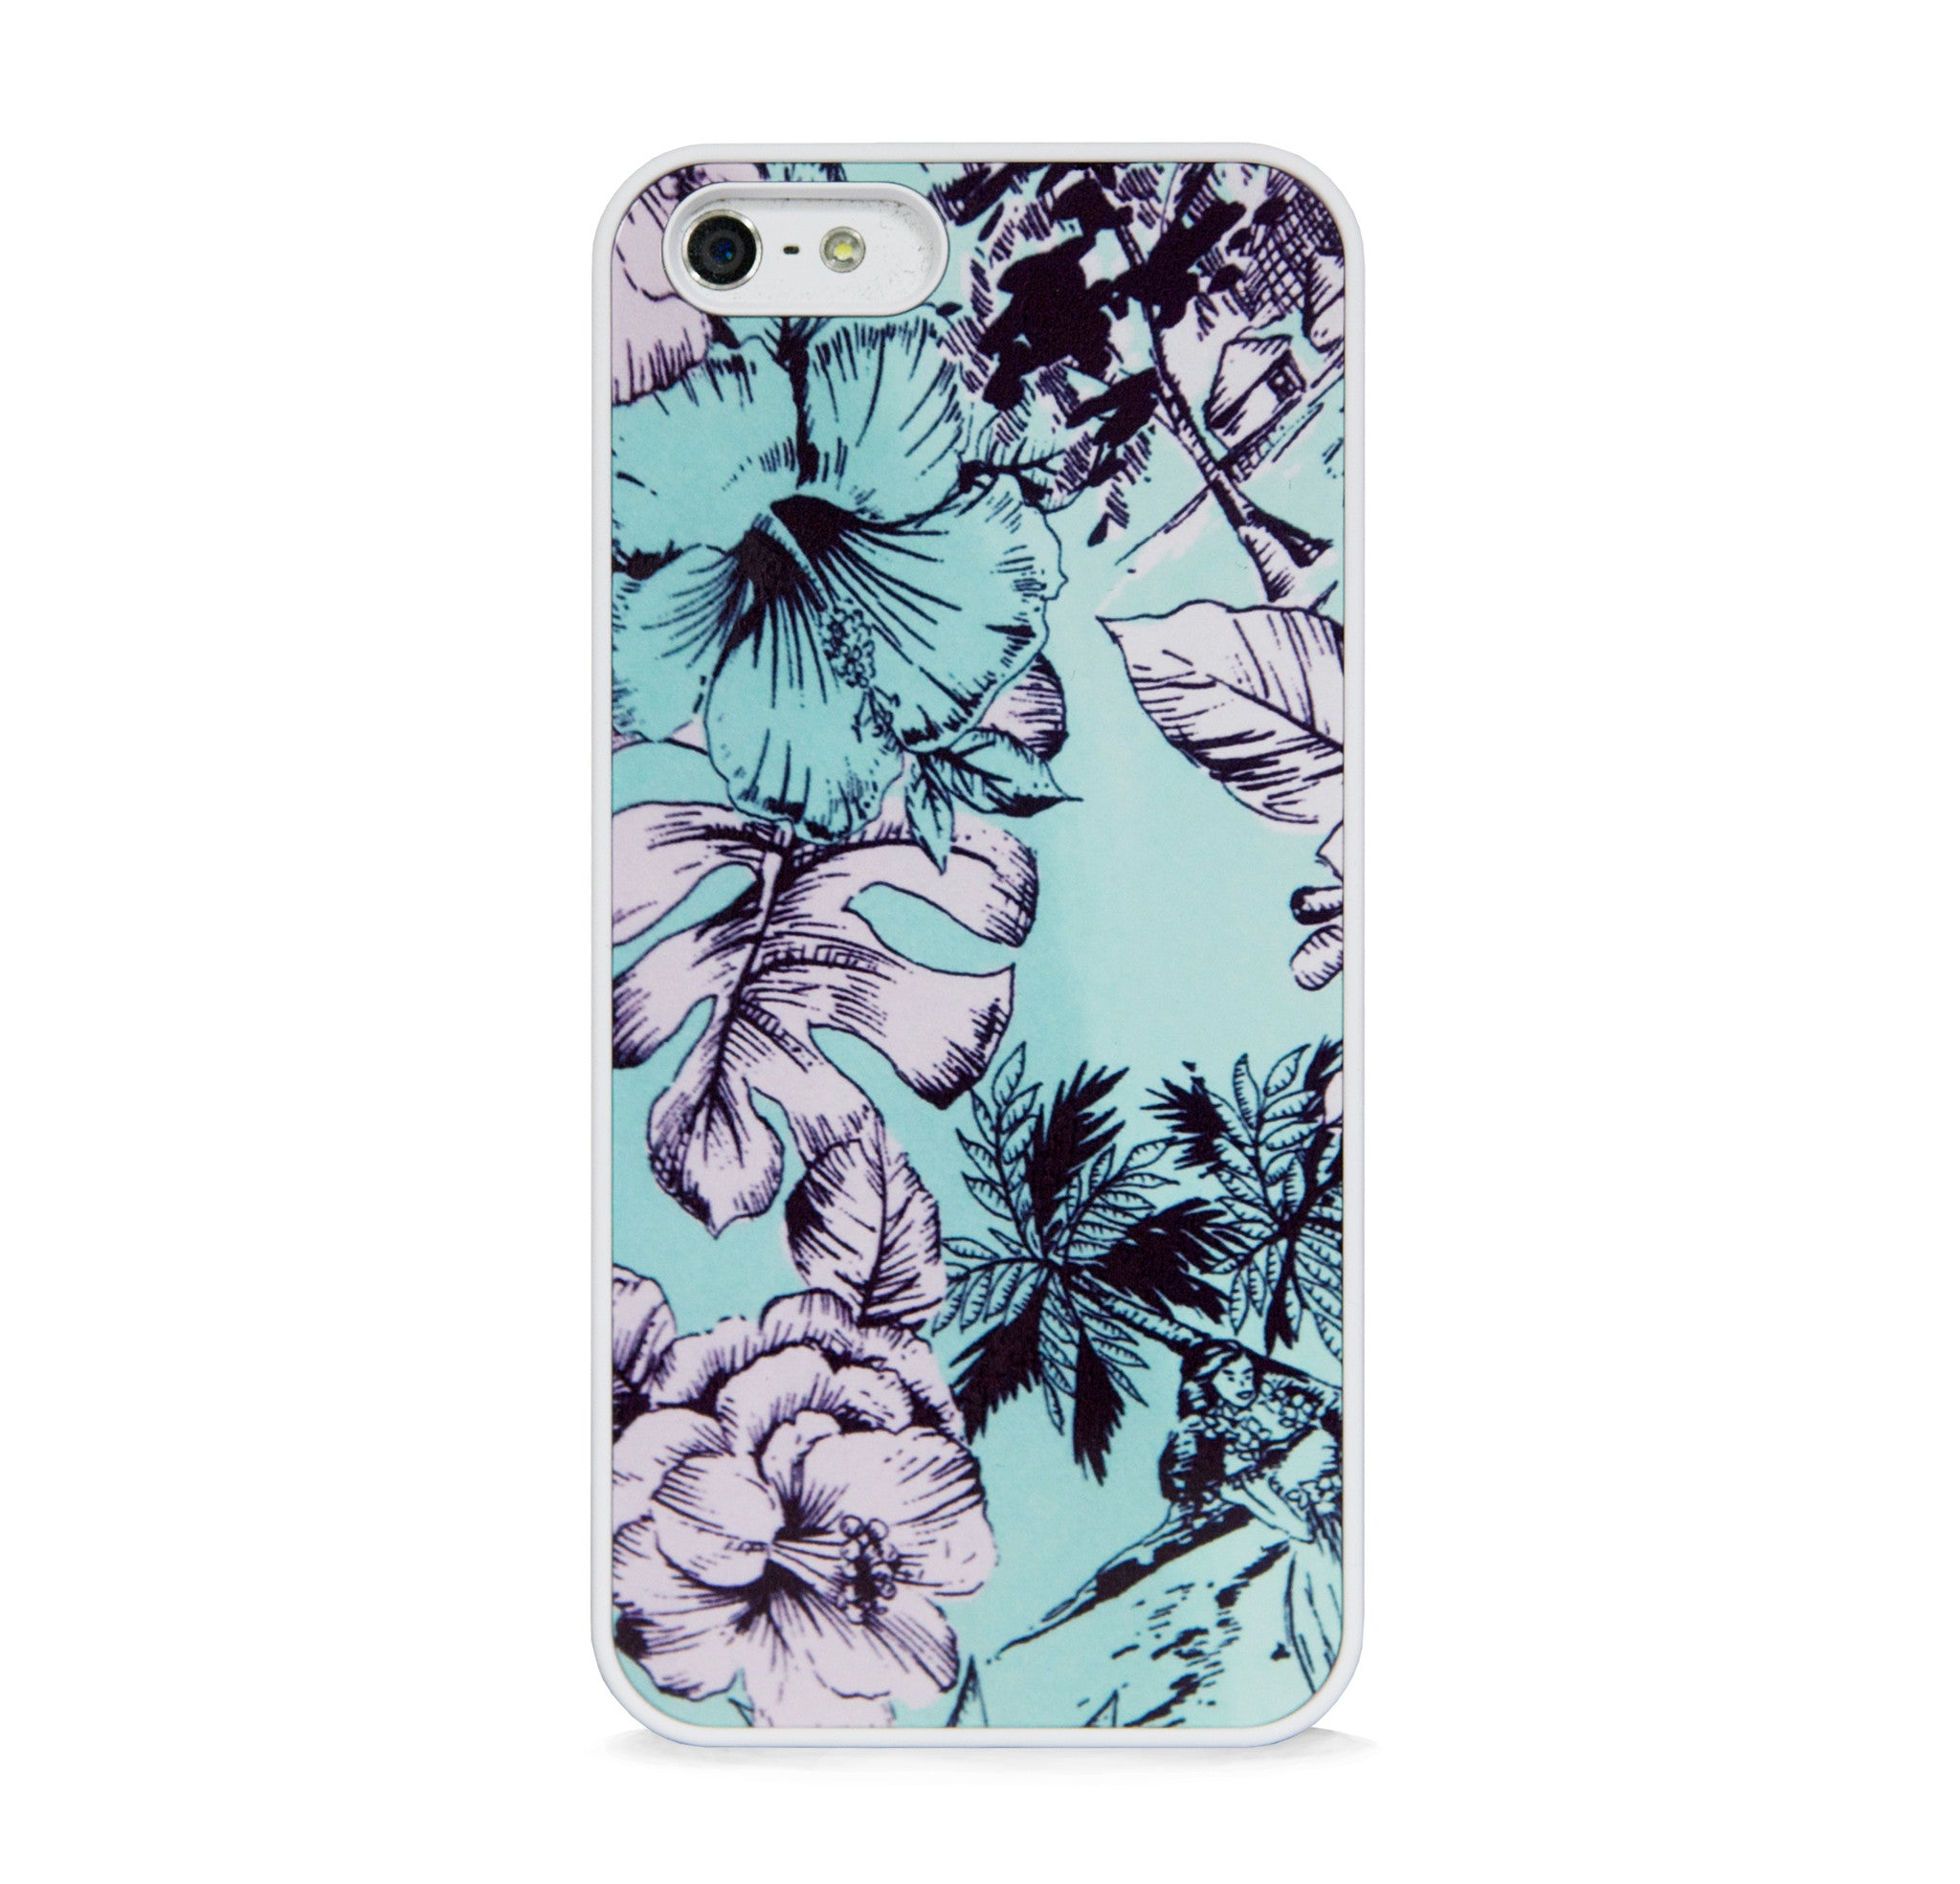 ARTISTIC FLORAL PATTERN MINT FOR IPHONE 5/5S